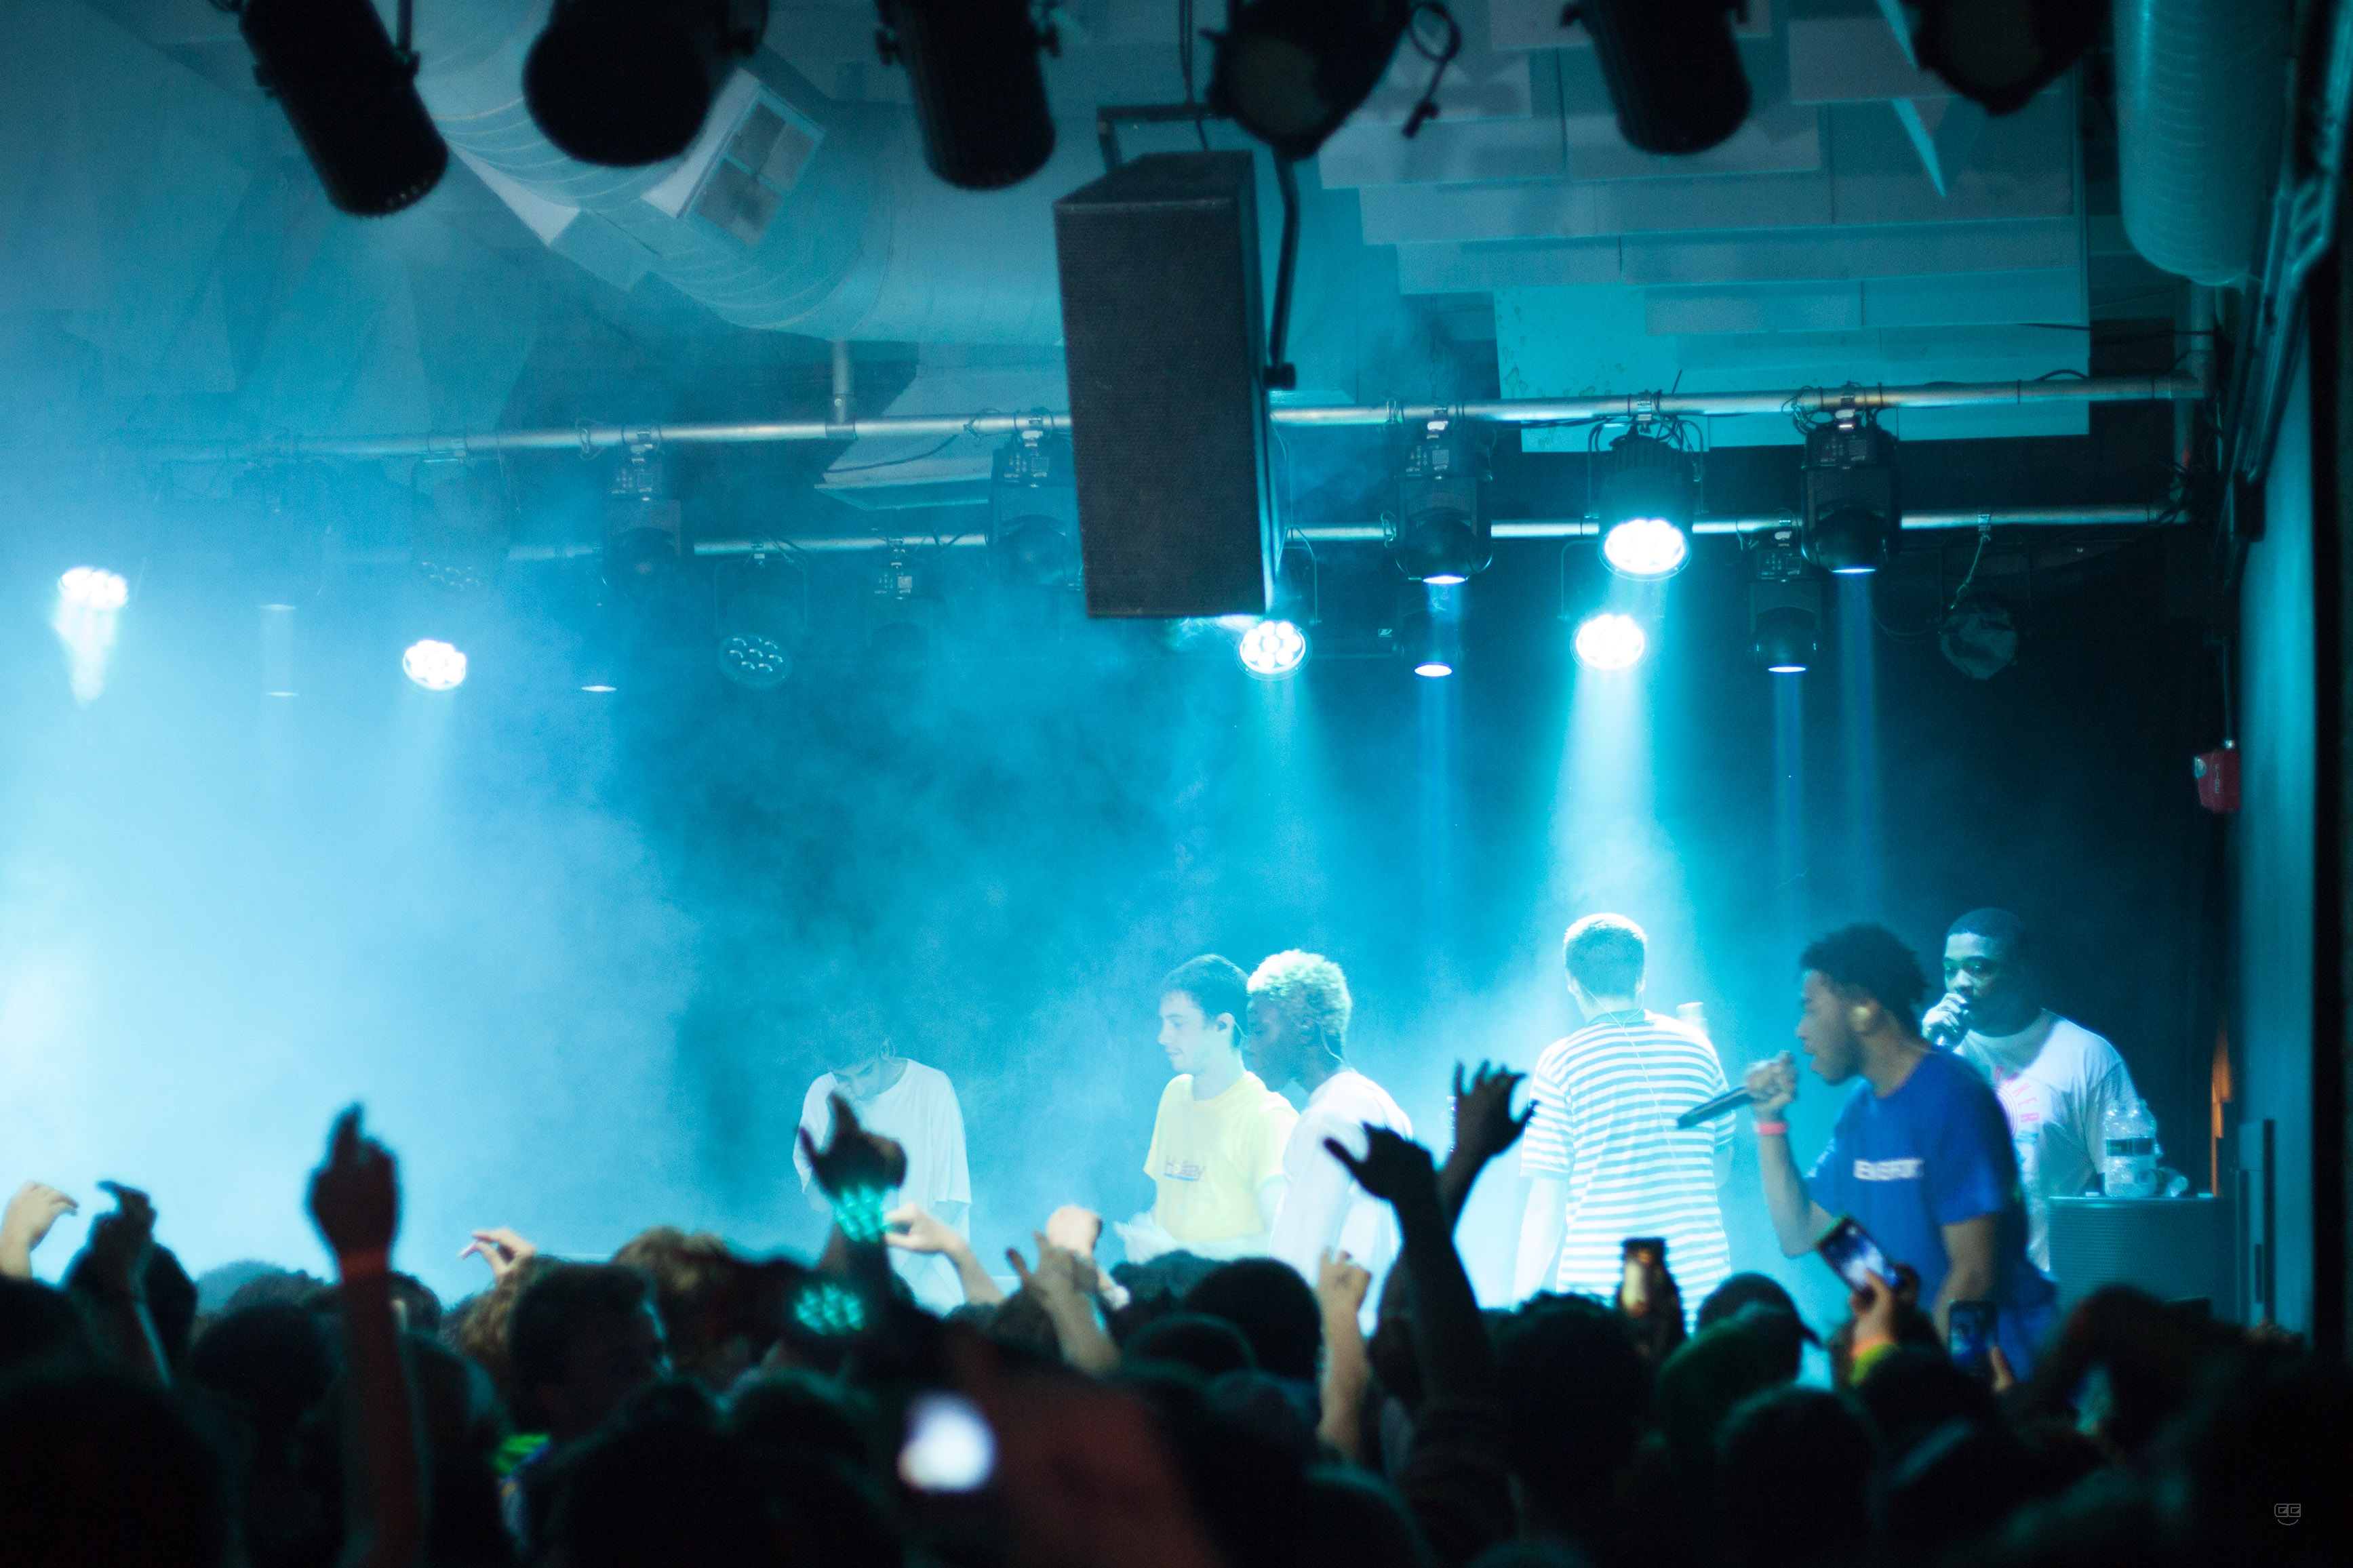 BROCKHAMPTON: Quickly rising to boyband superstardom